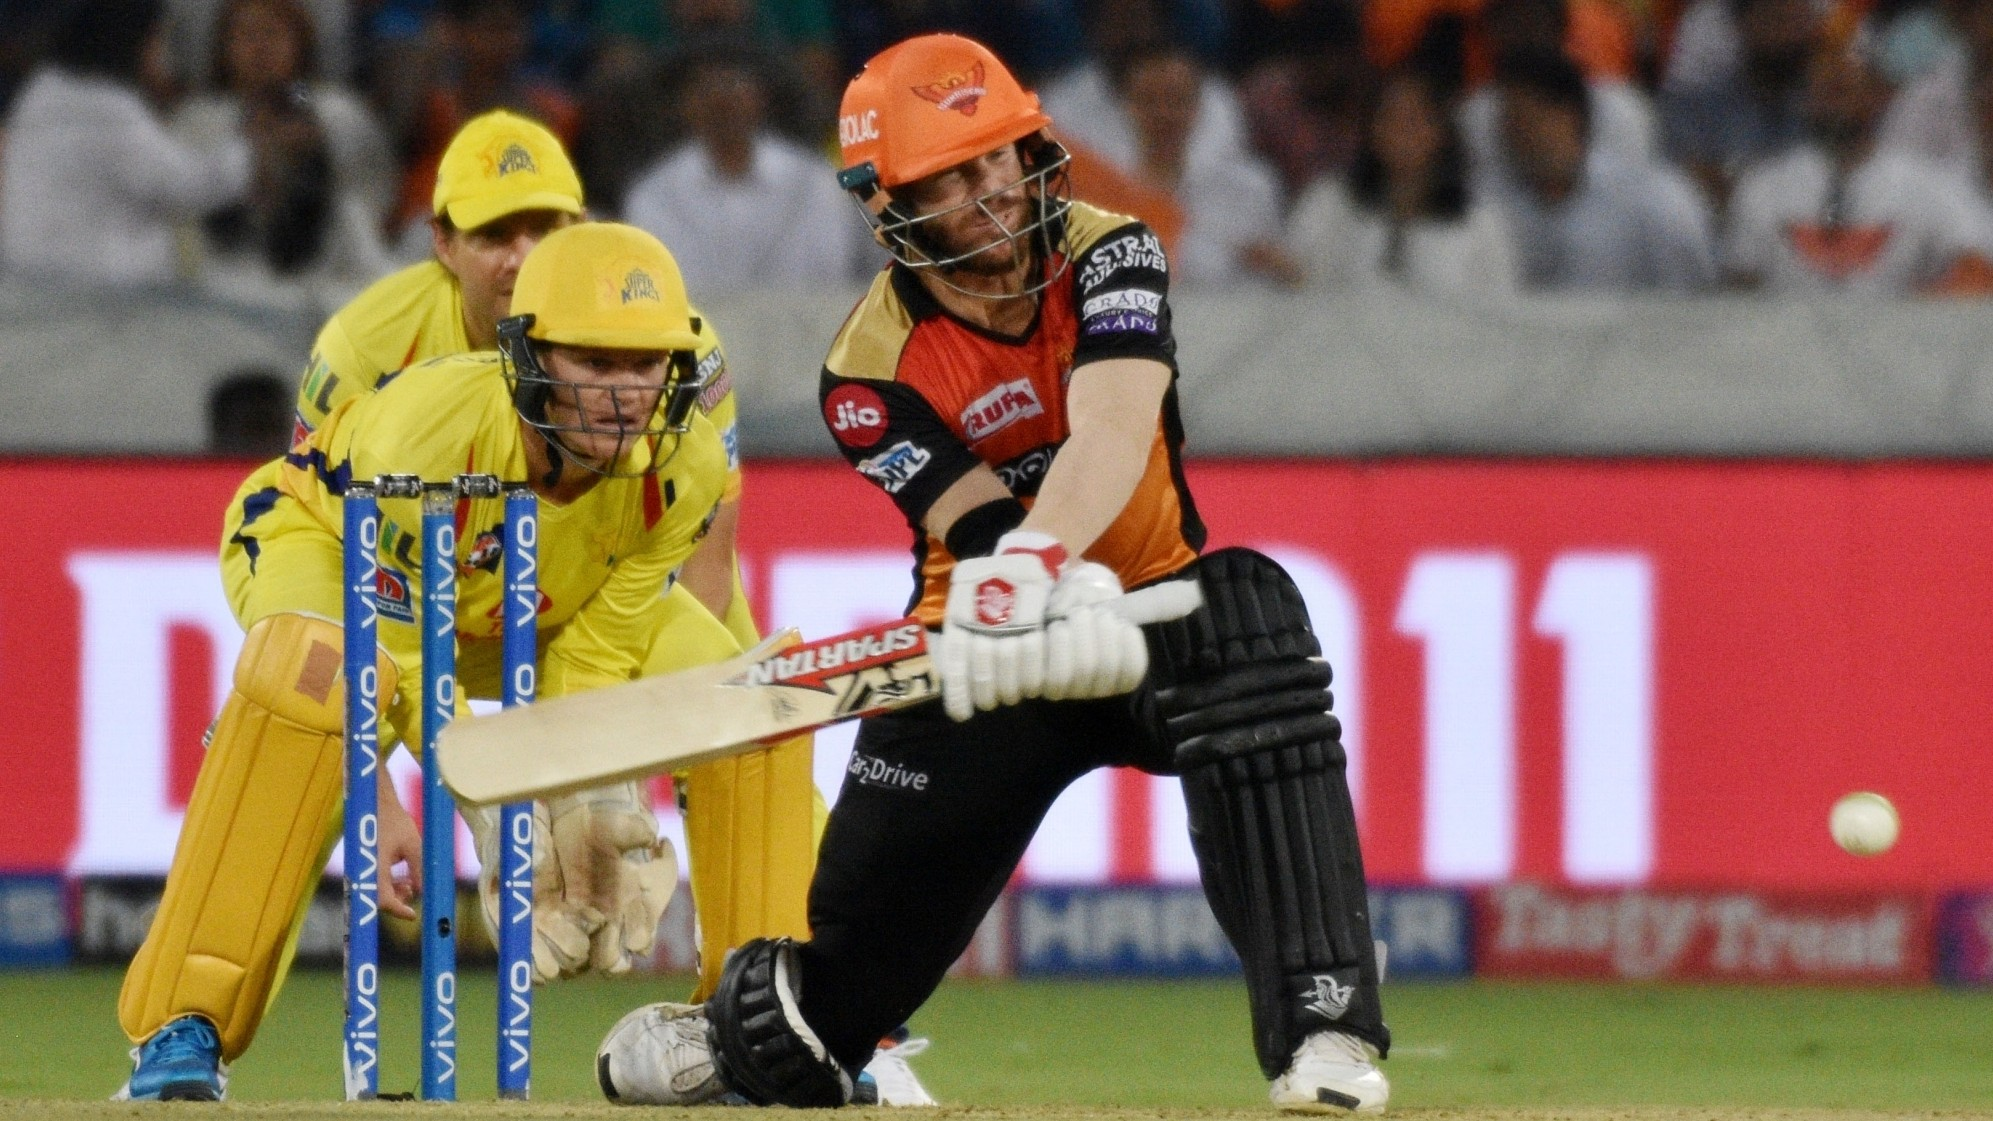 IPL 2020: Match 29, SRH v CSK - Statistical Preview of the Match